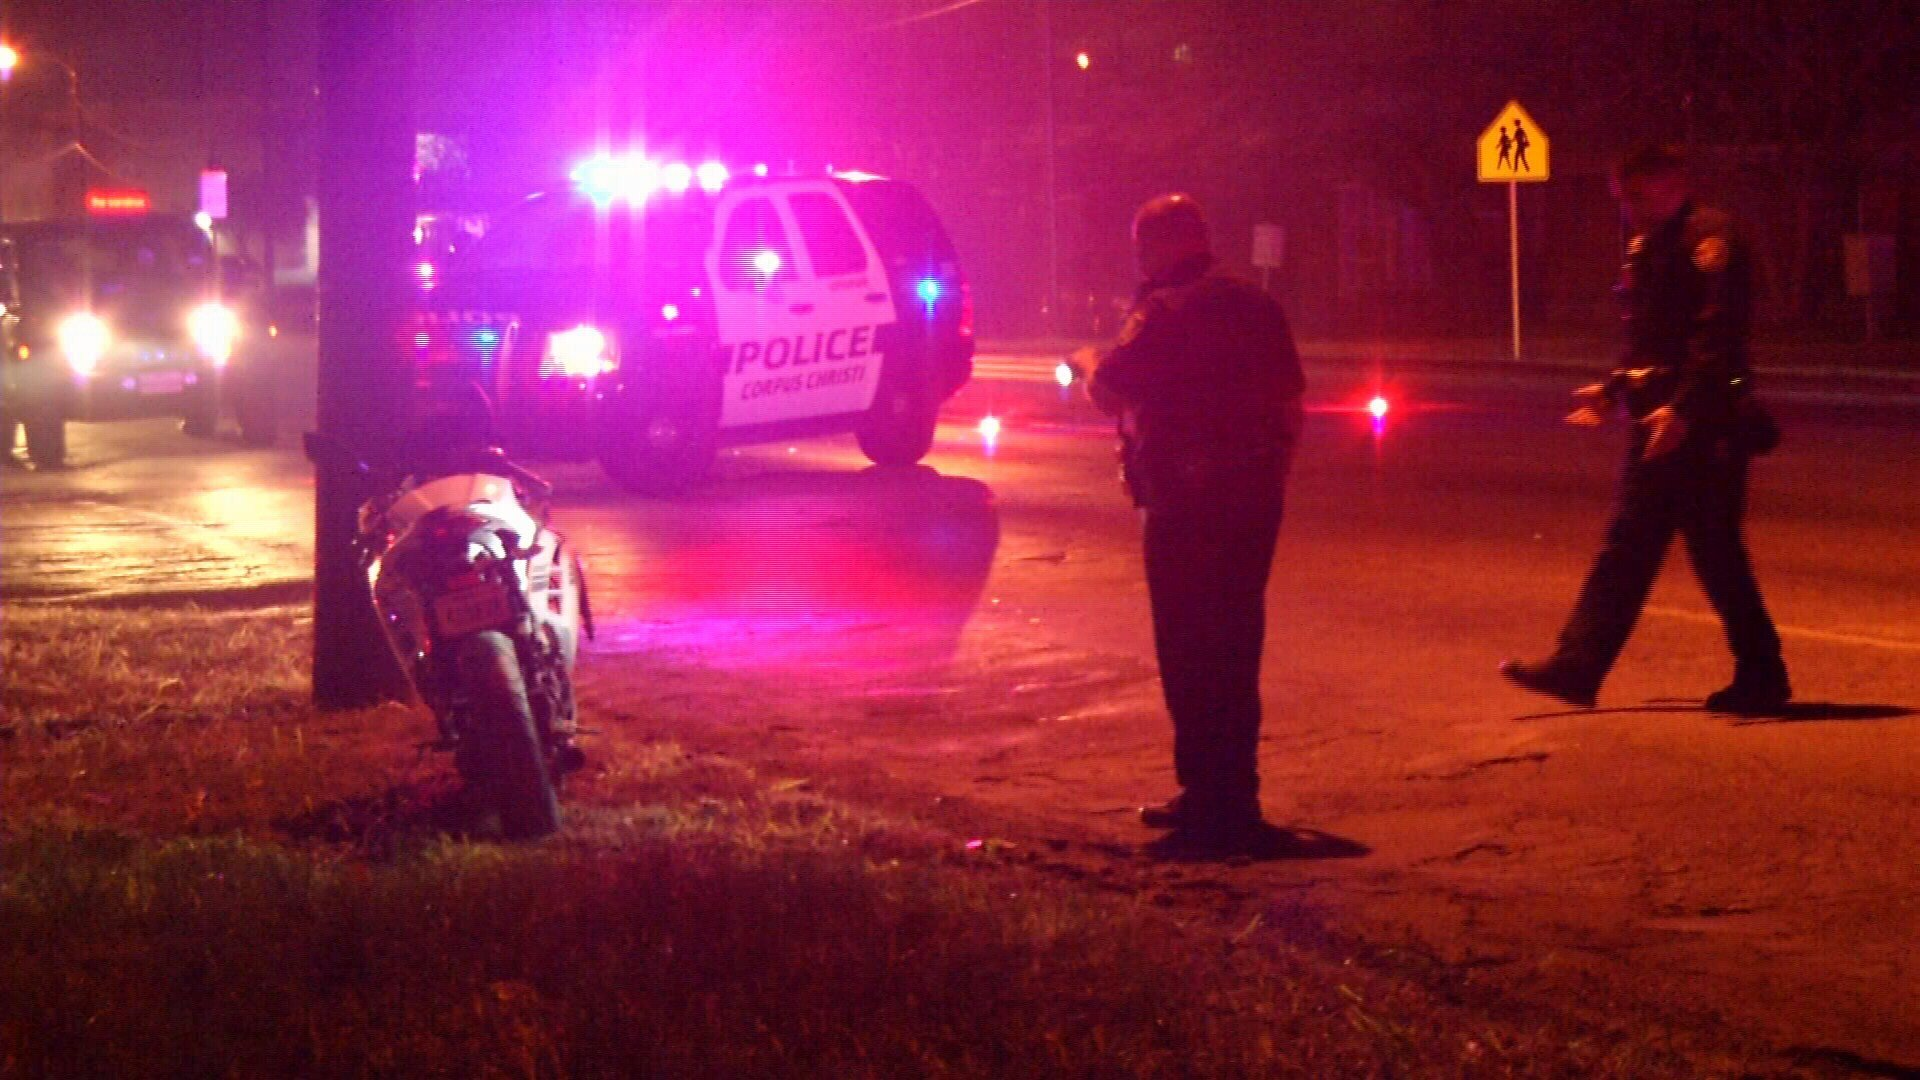 Police said a motorcyclist was killed after being struck by another vehicle while attempting a turn.